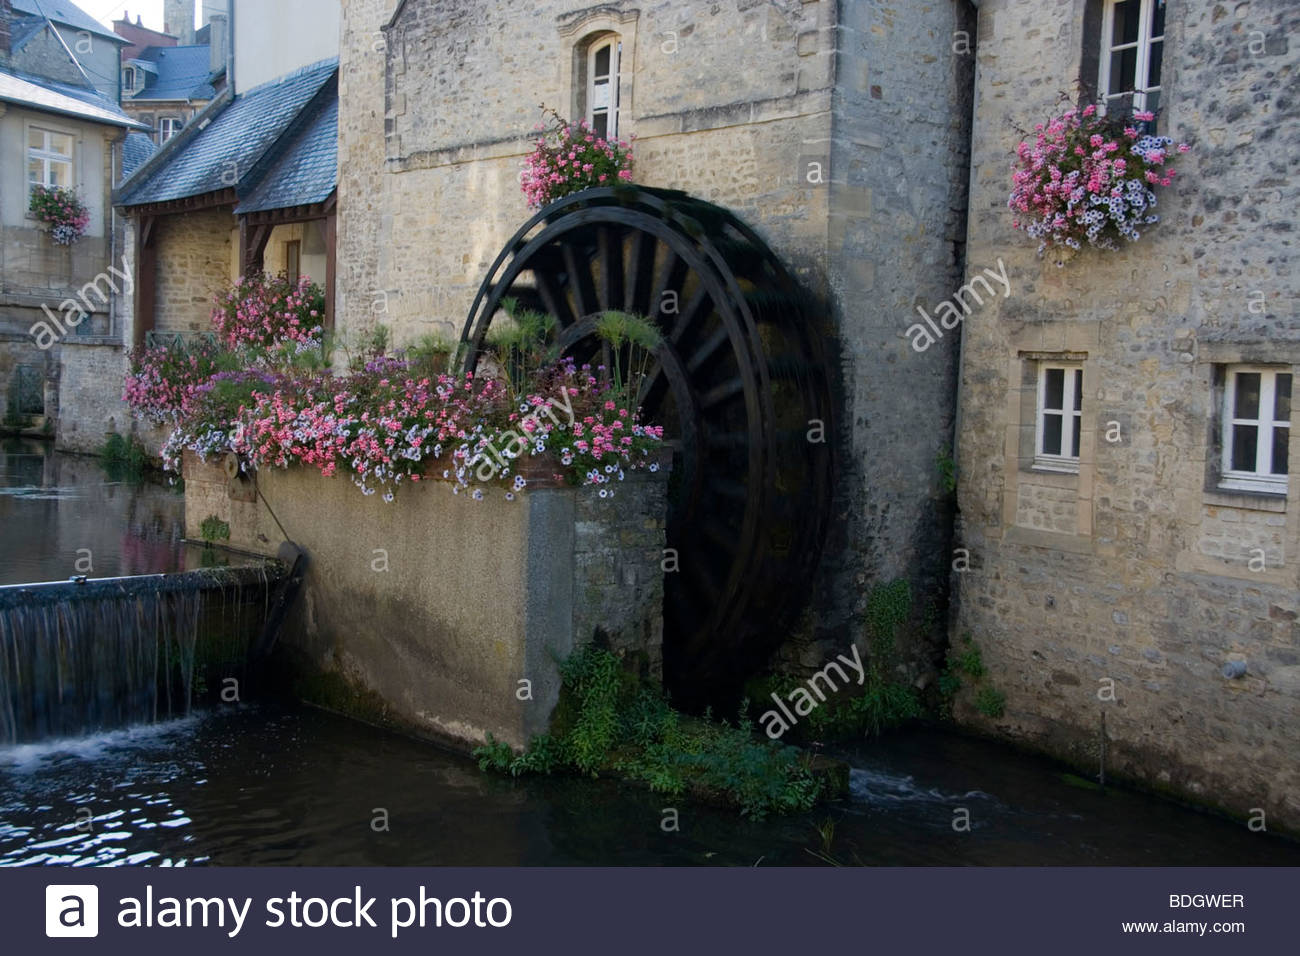 France Normandy Bayeux Water Wheel on River - Stock Image